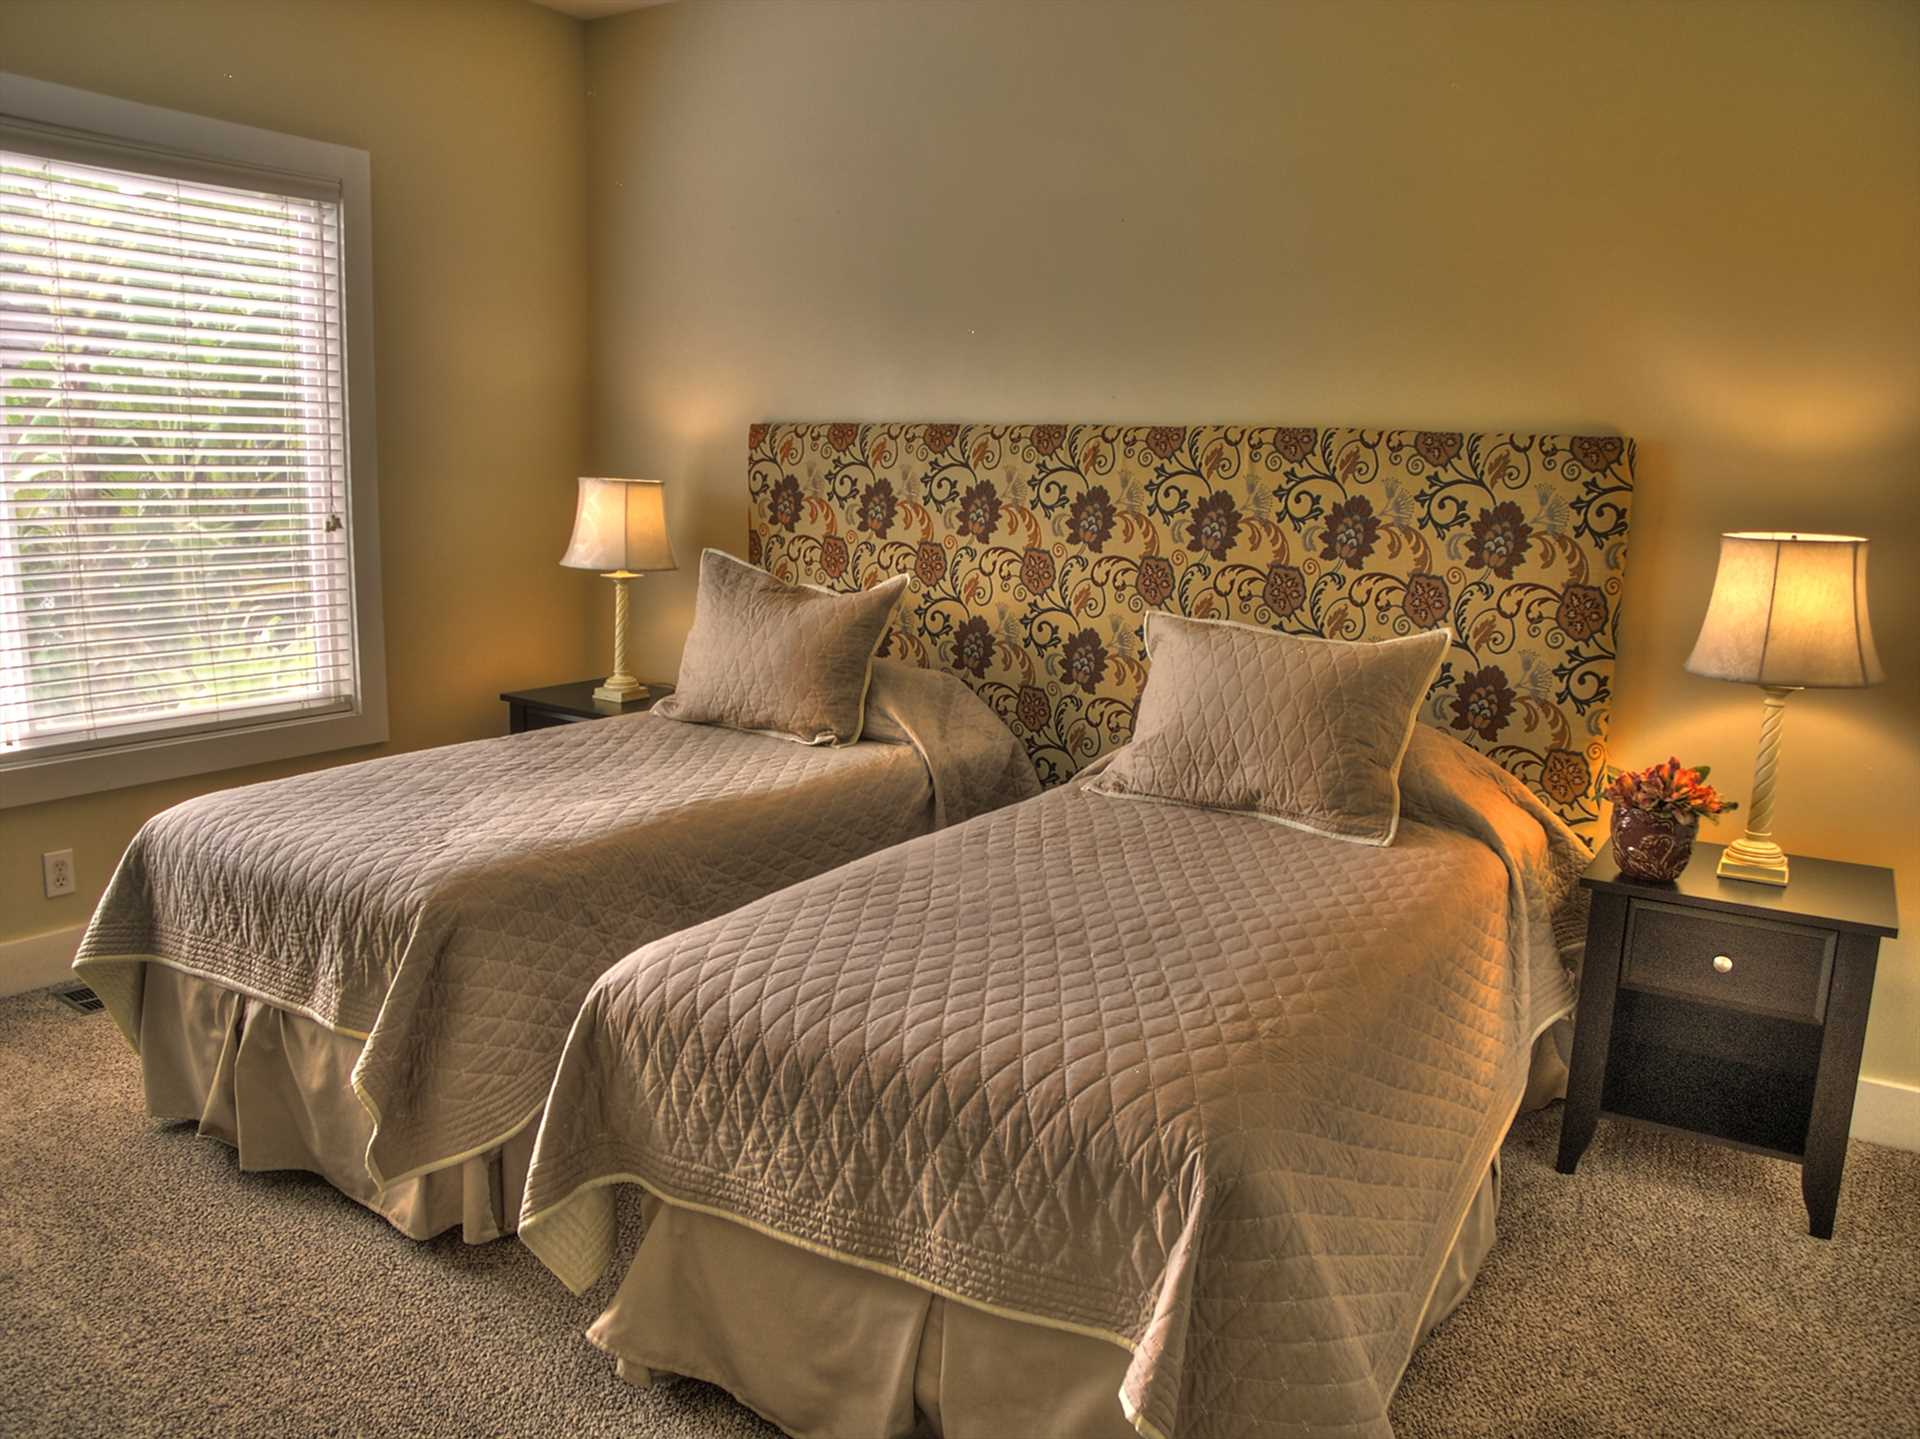 Twin Beds in the Guest Bedroom can Be Converted into a King Bed